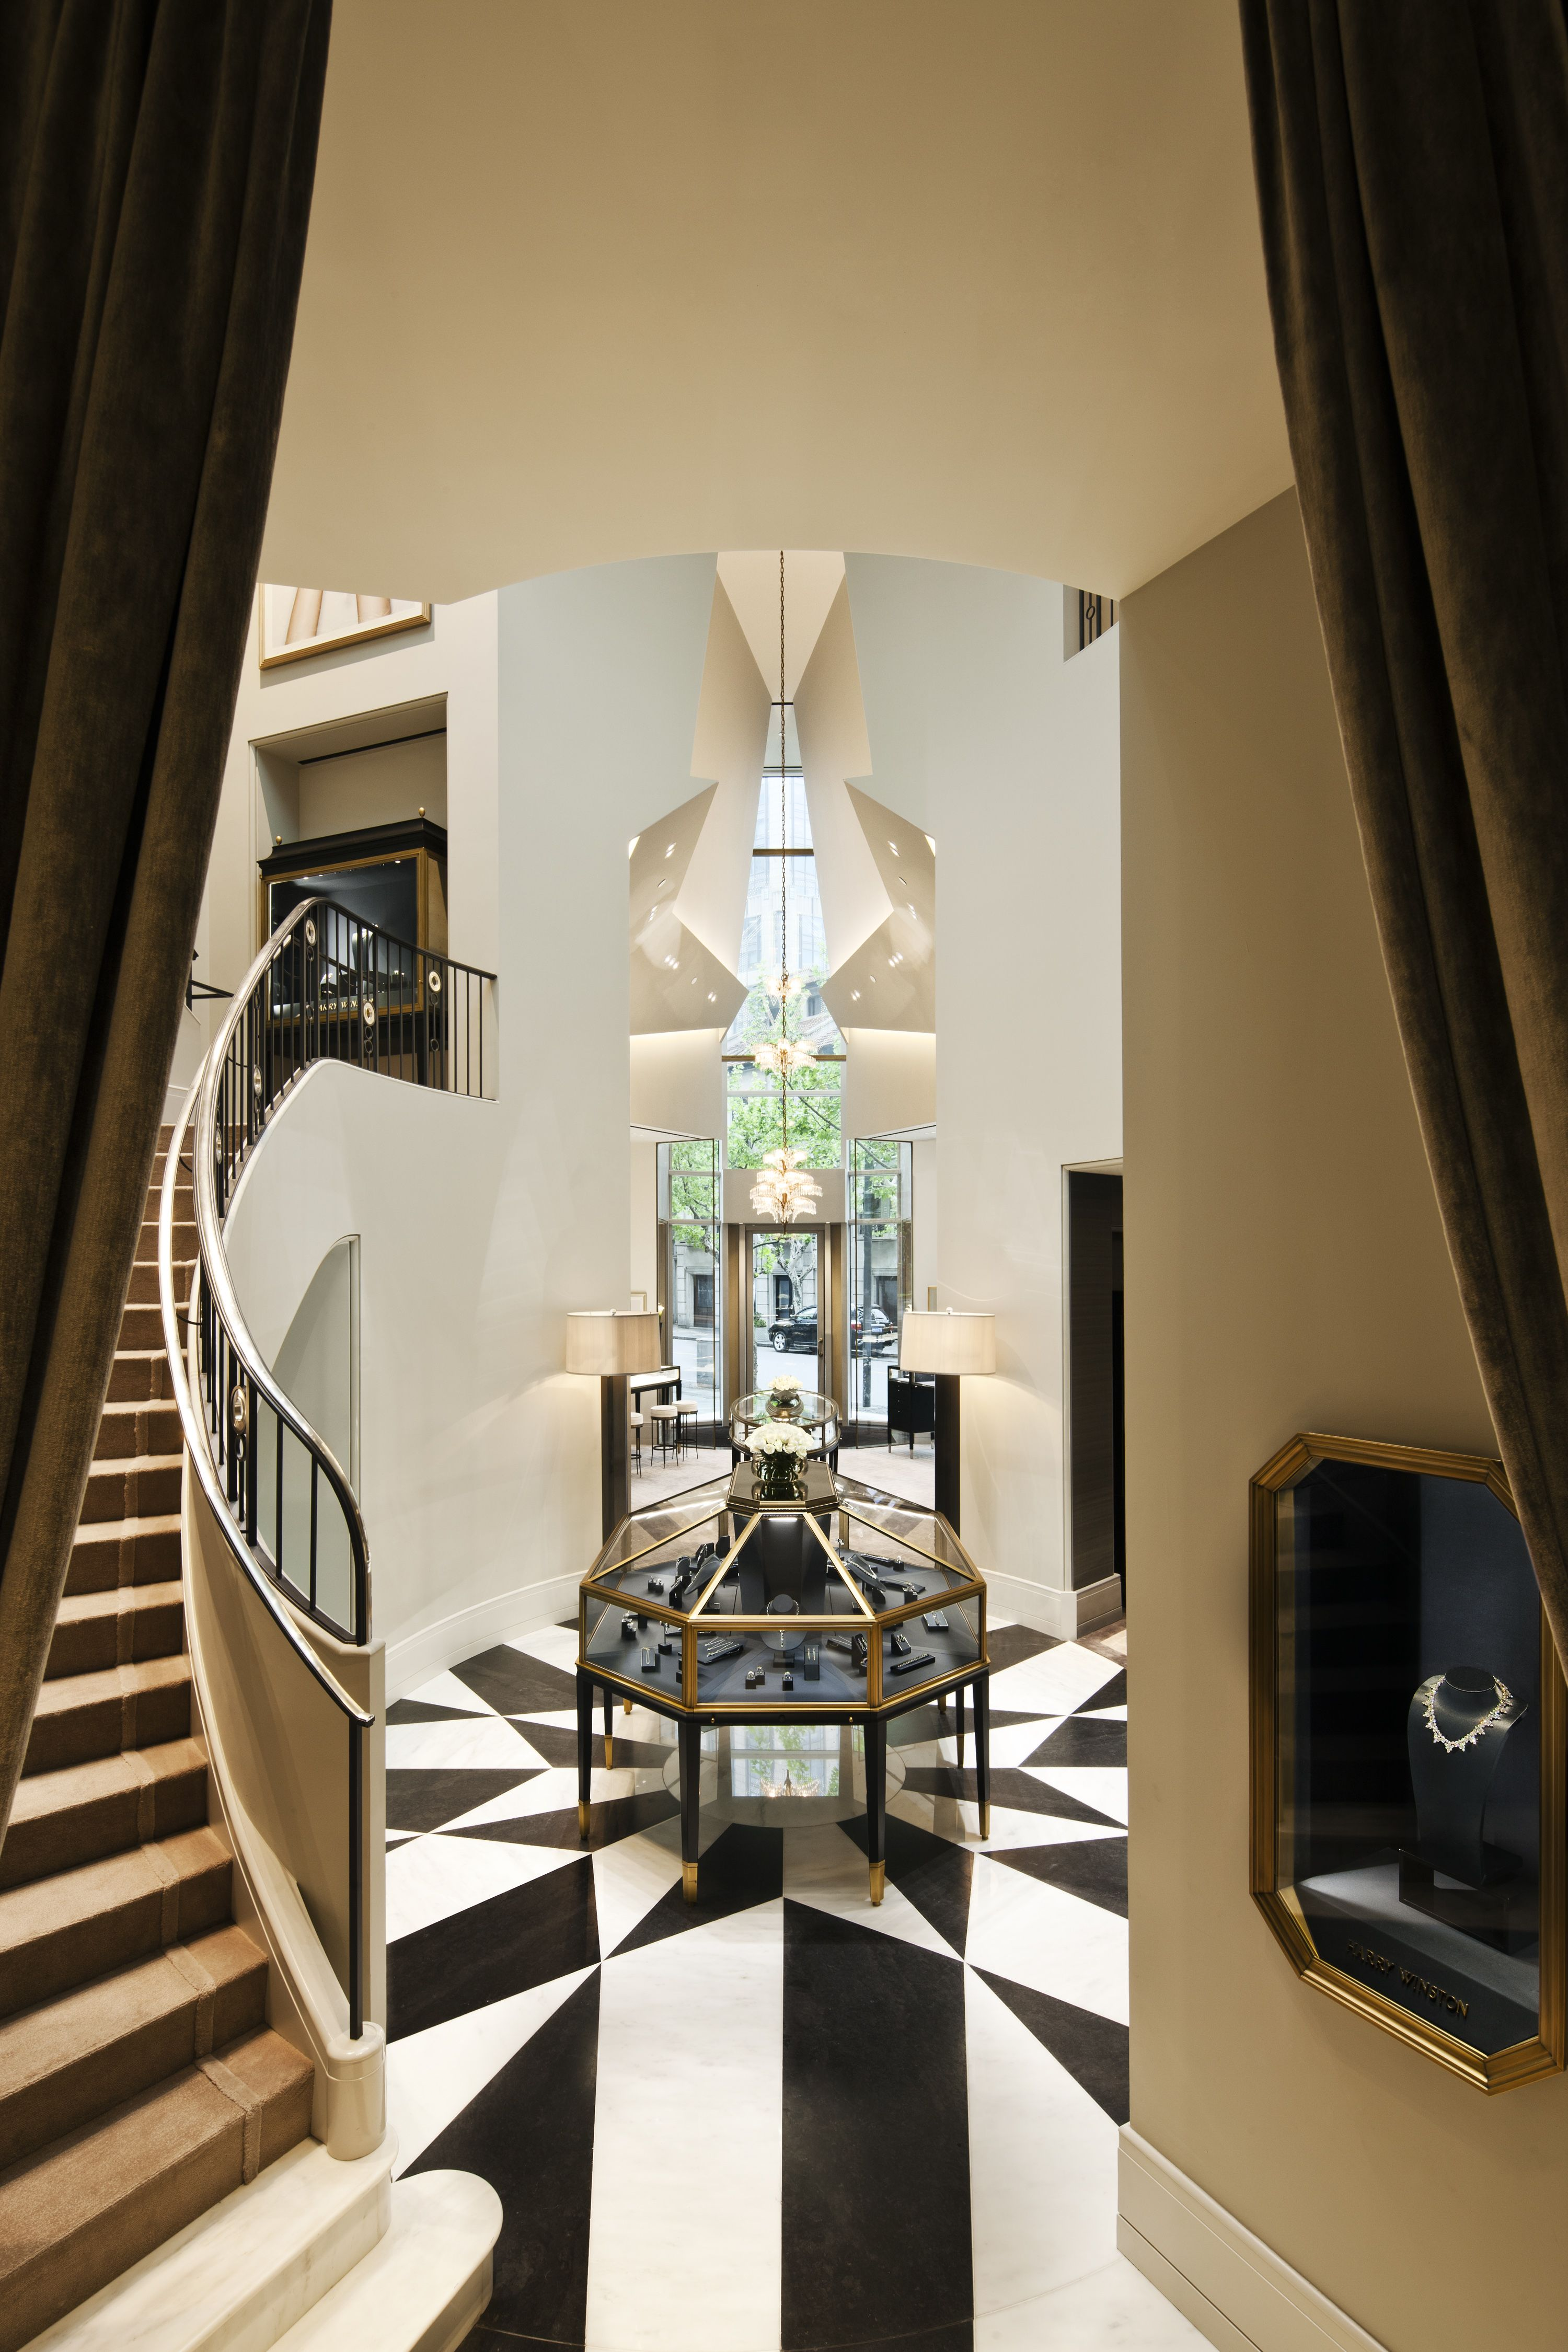 Diamond Jewelry & Luxury Watches - Harry Winston Interior Ideashome